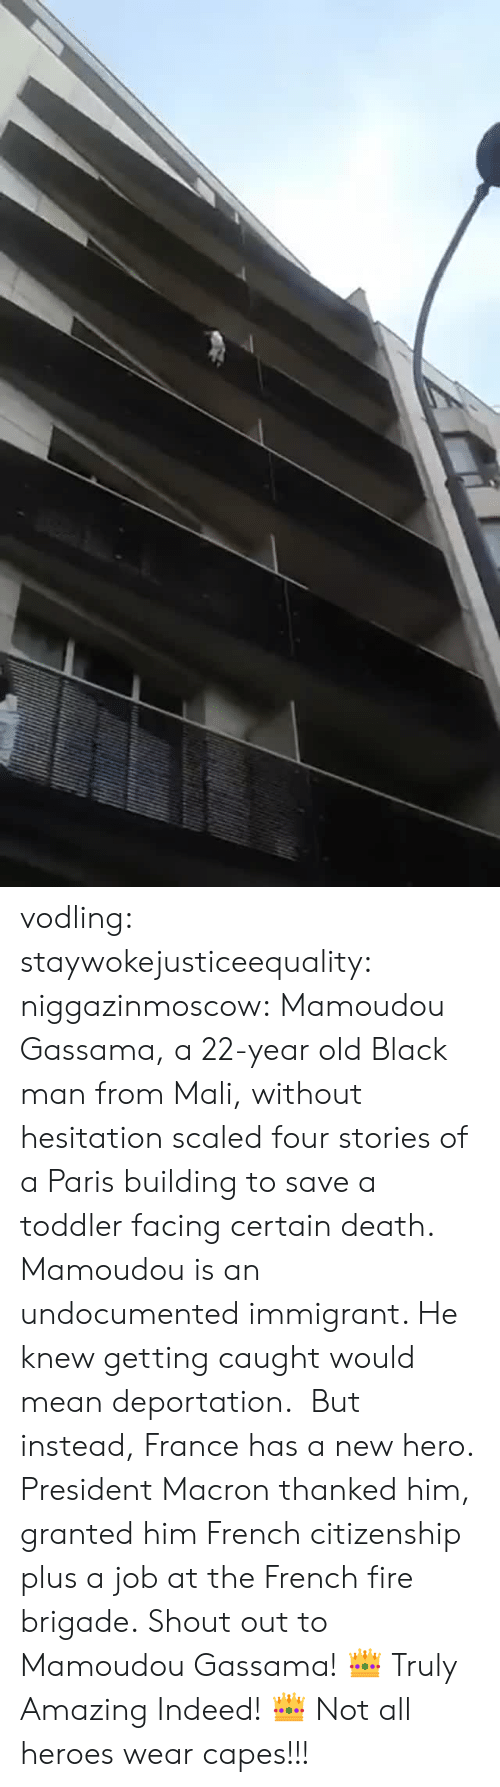 mali: vodling:  staywokejusticeequality:  niggazinmoscow:  Mamoudou Gassama, a 22-year old Black man from Mali, without hesitation   scaled four stories of a Paris building to save a toddler facing certain death. Mamoudou is an undocumented immigrant. He knew getting caught would mean deportation. But instead, France has a new hero. President Macron thanked him, granted him French citizenship plus a job at the French fire brigade. Shout out to Mamoudou Gassama!    👑 Truly Amazing Indeed! 👑    Not all heroes wear capes!!!